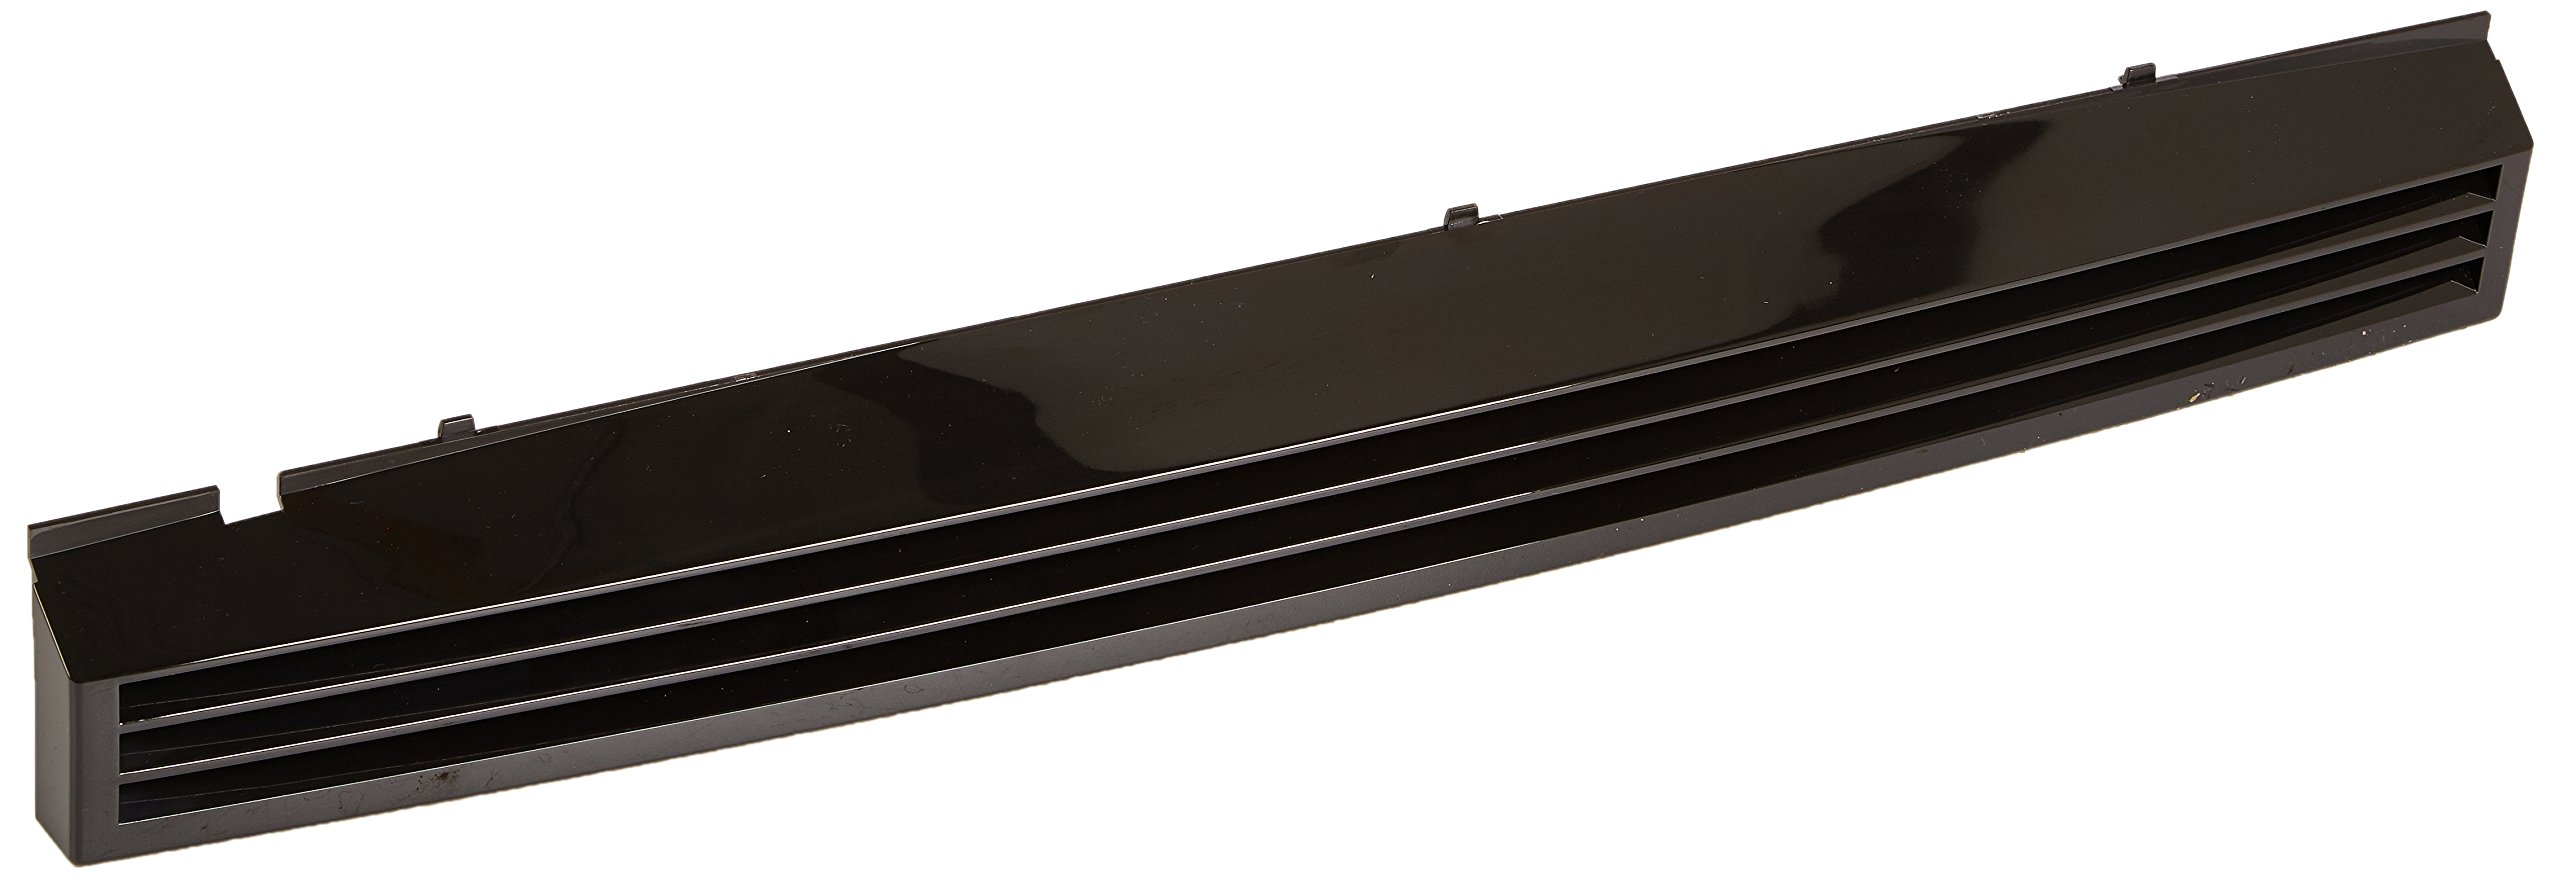 Whirlpool W10450187 Vent Grille Black Microwave by Whirlpool